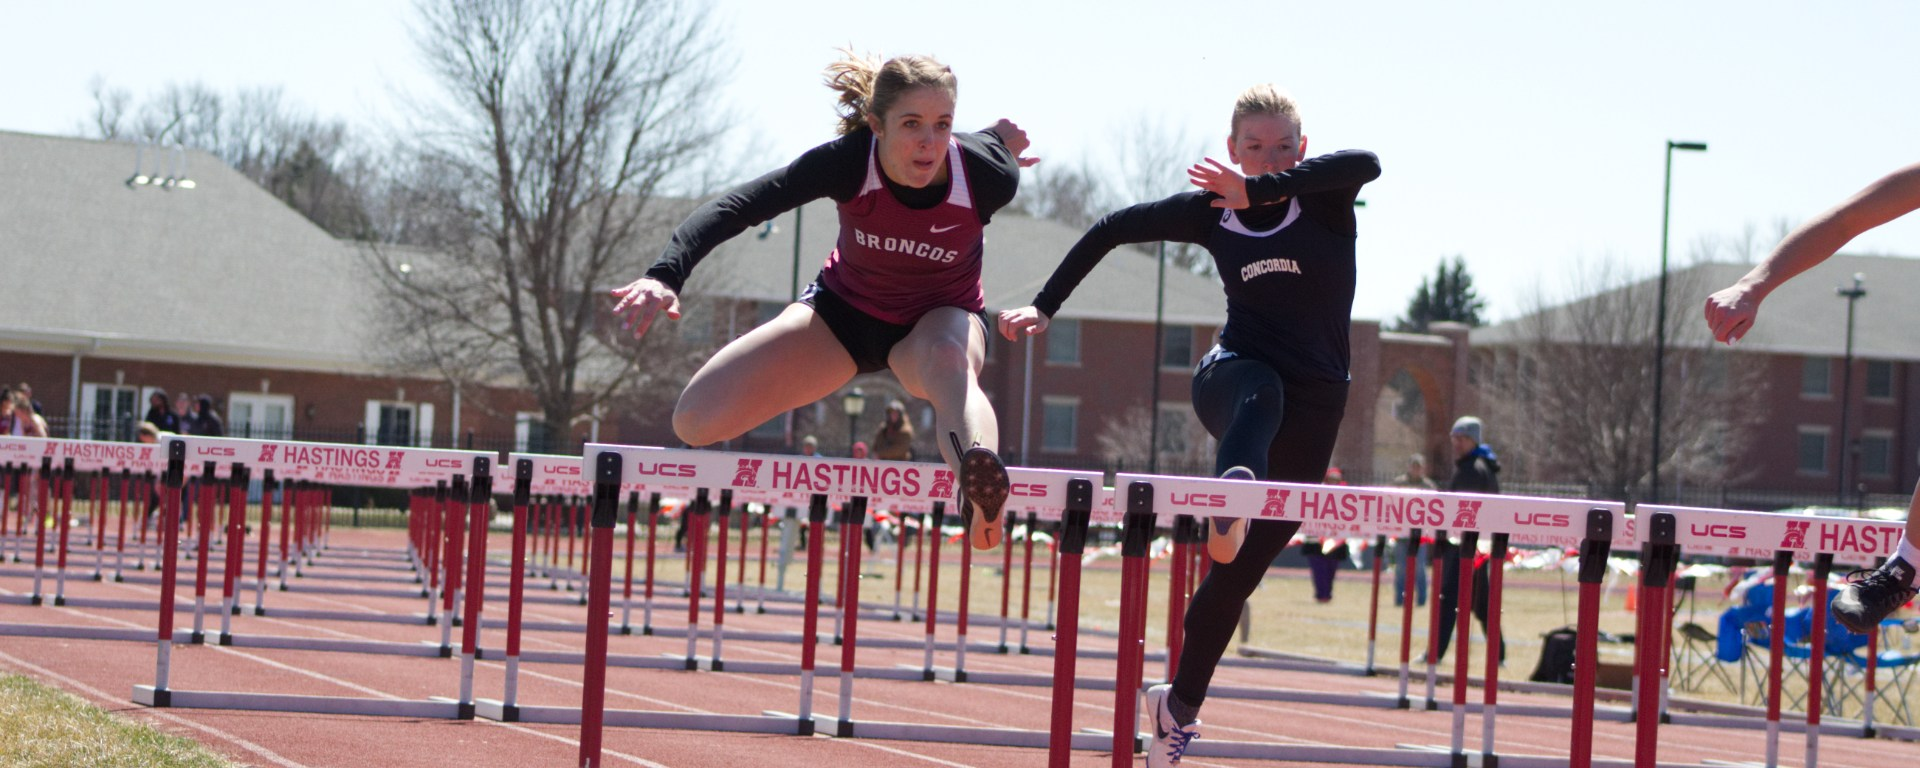 First-year student Lexi Preissler jumps over a hurdle while passing her competition. Preissler was able to place third in the 400-meter hurdles and place in two other events as well.